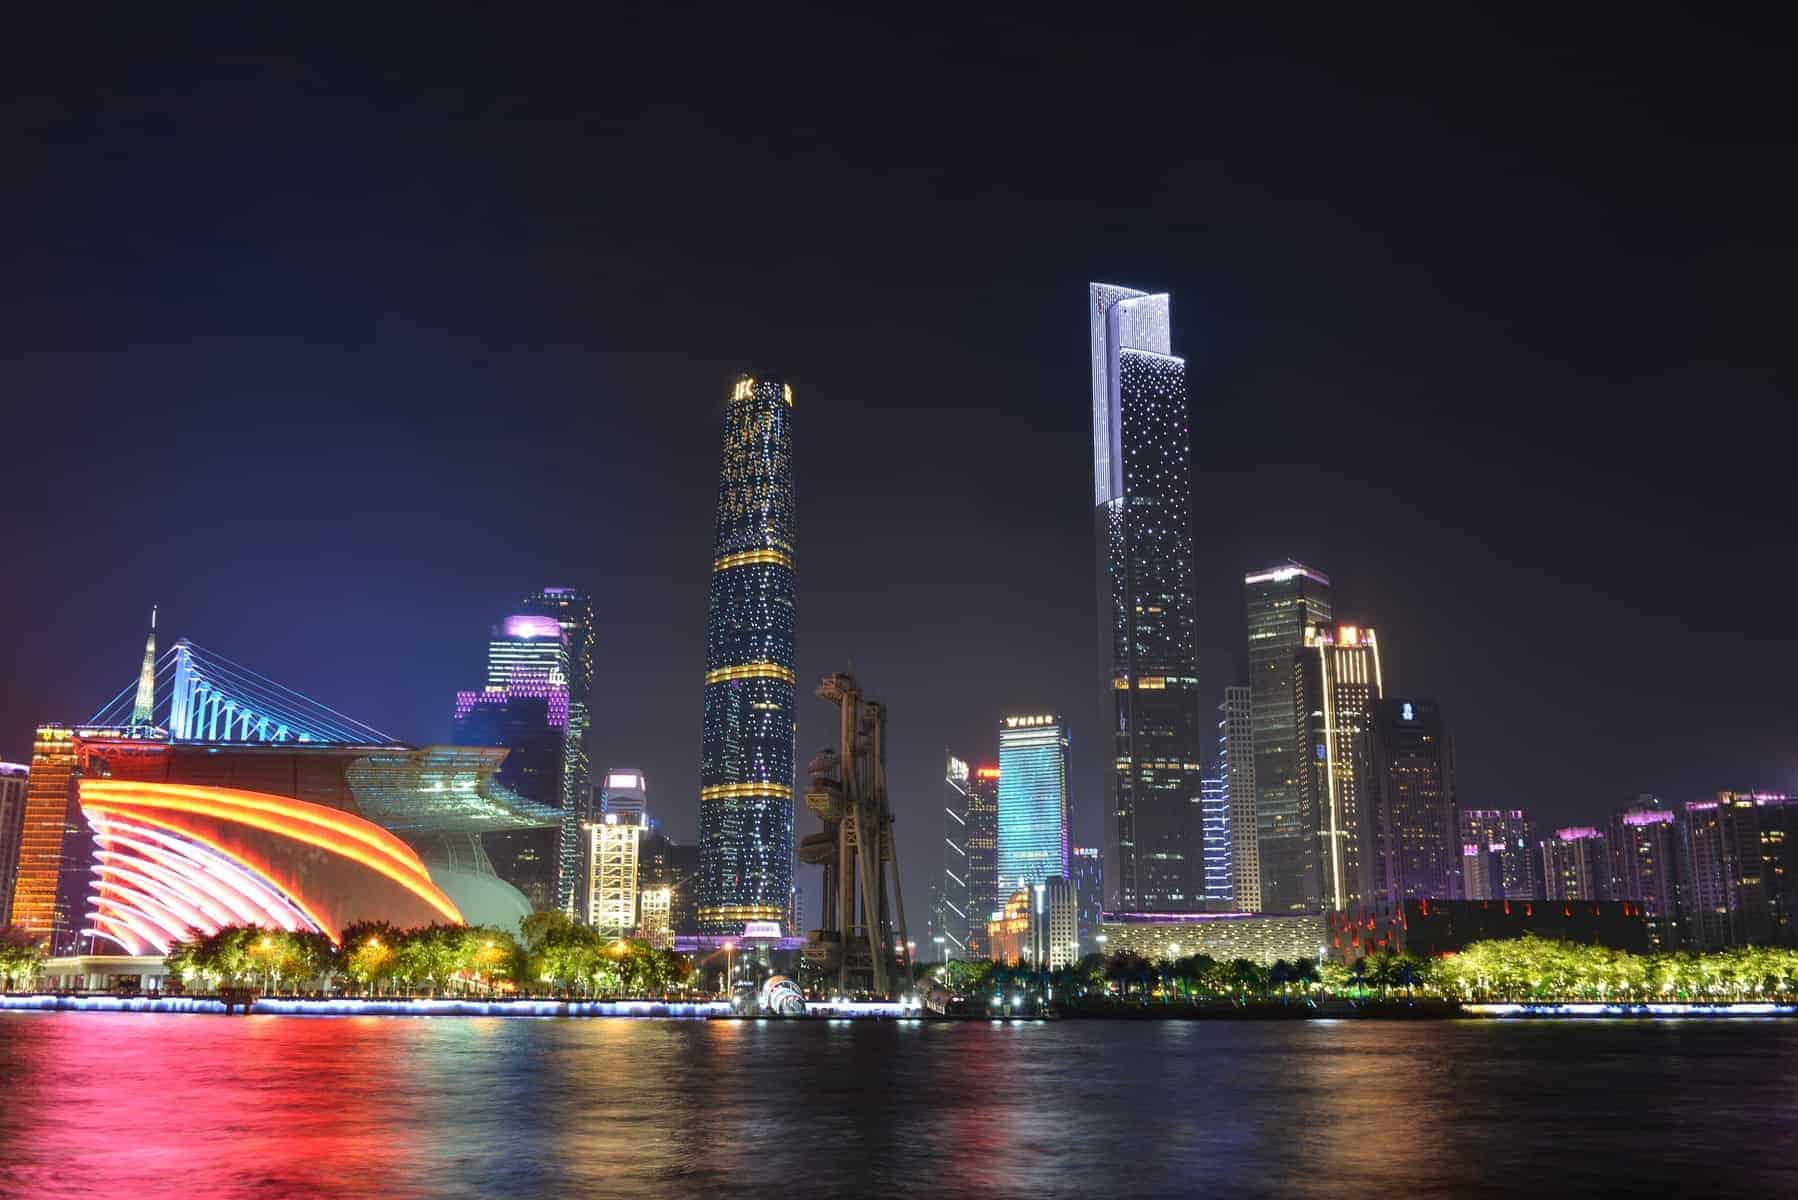 Guangzhou International Finance Centre & CTF Finance Centre, called Twin Towers, are landmarks in Guangzhou City, which are located in the central axis of the city in Zhujiang New Town.